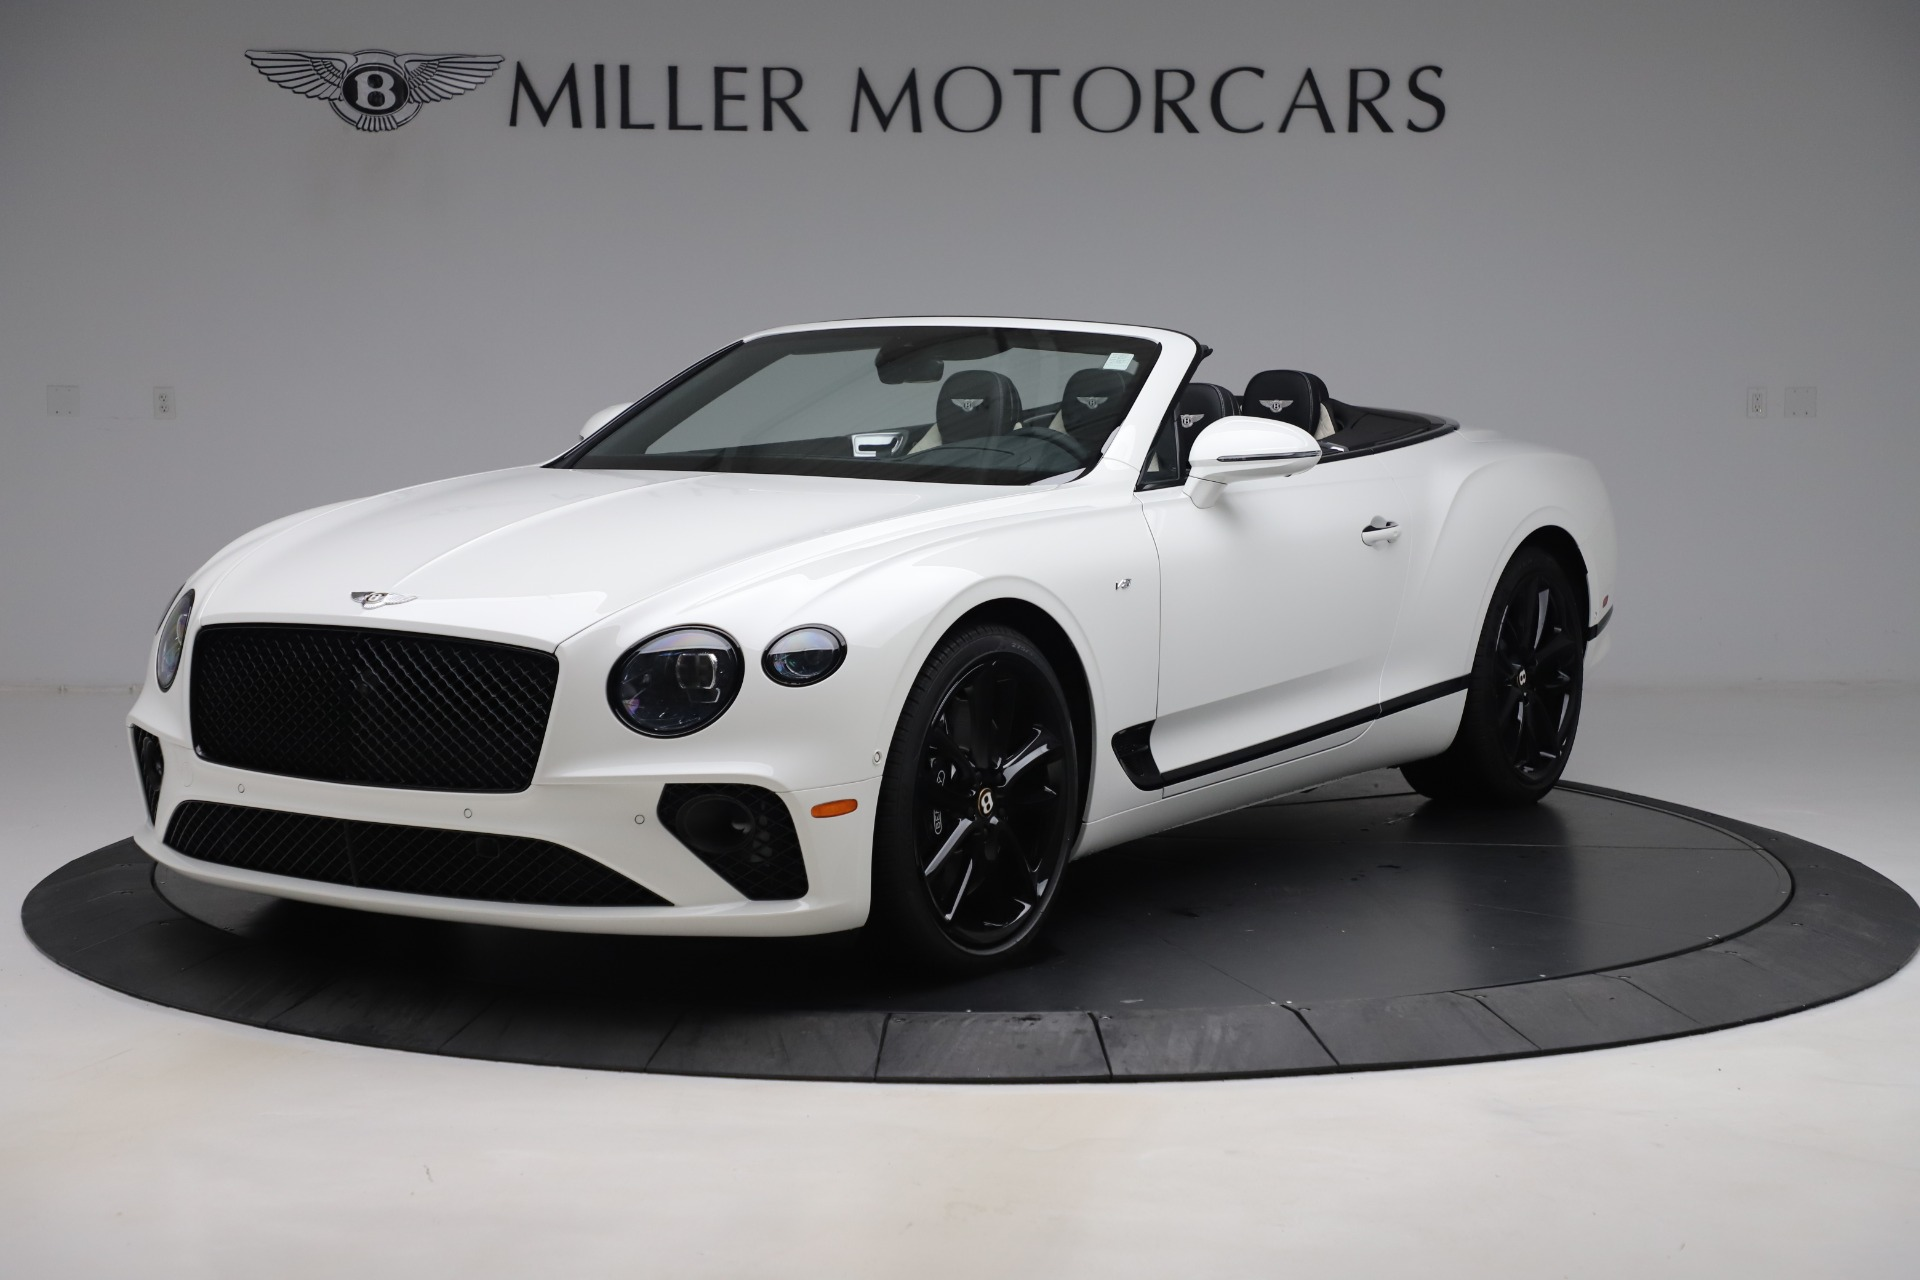 Used 2020 Bentley Continental GTC V8 for sale $277,915 at Alfa Romeo of Westport in Westport CT 06880 1